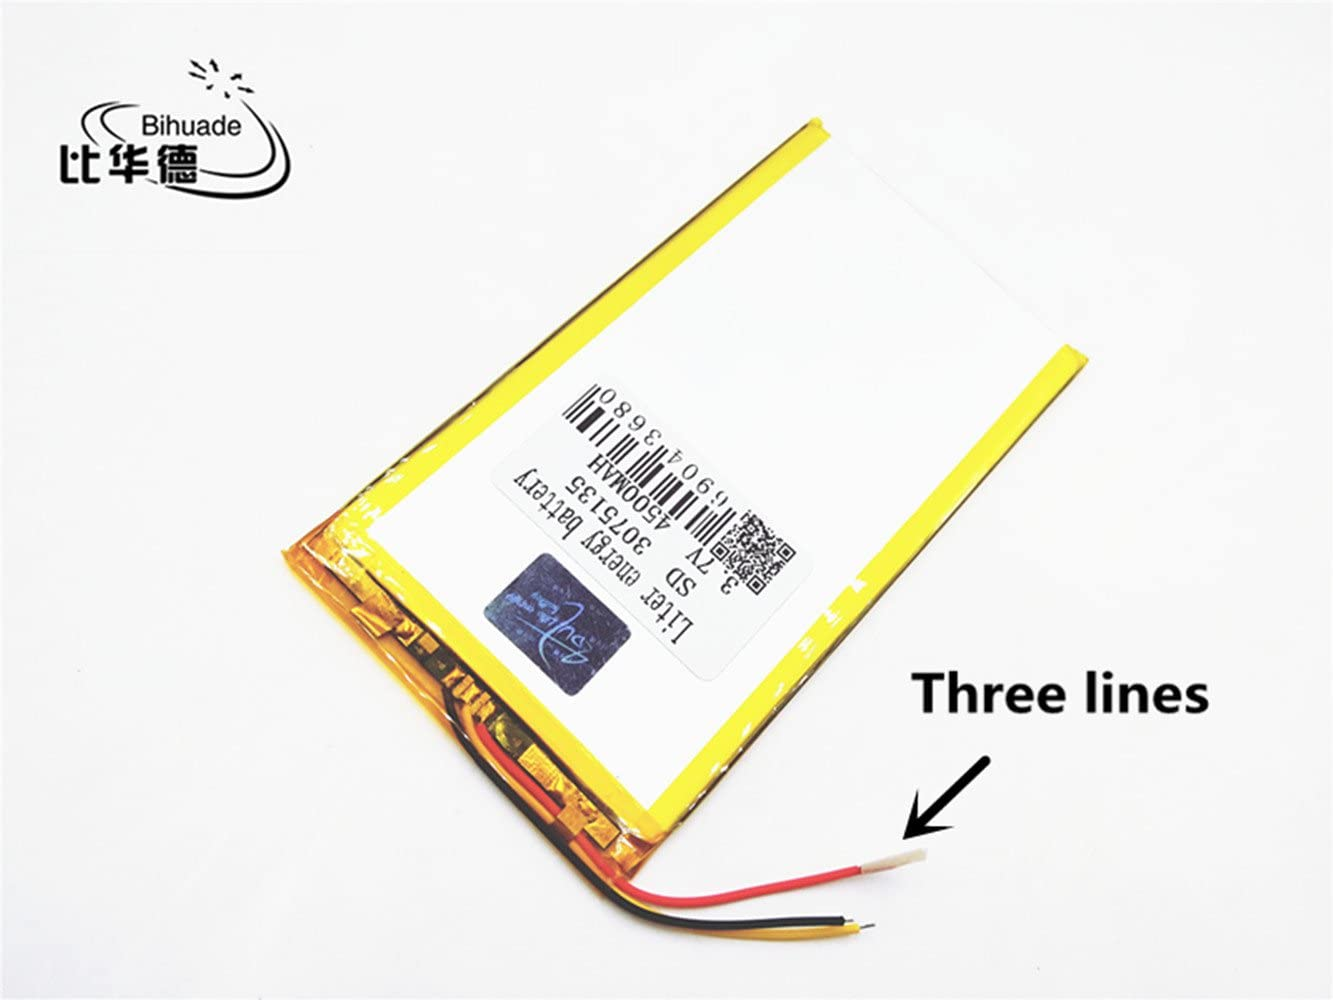 BIHUADE 3 line 3.7V 6000MAH 3280150 Lithium Polymer Li-Po Rechargeable Battery for DIY Mp3 MP4 MP5 GPS